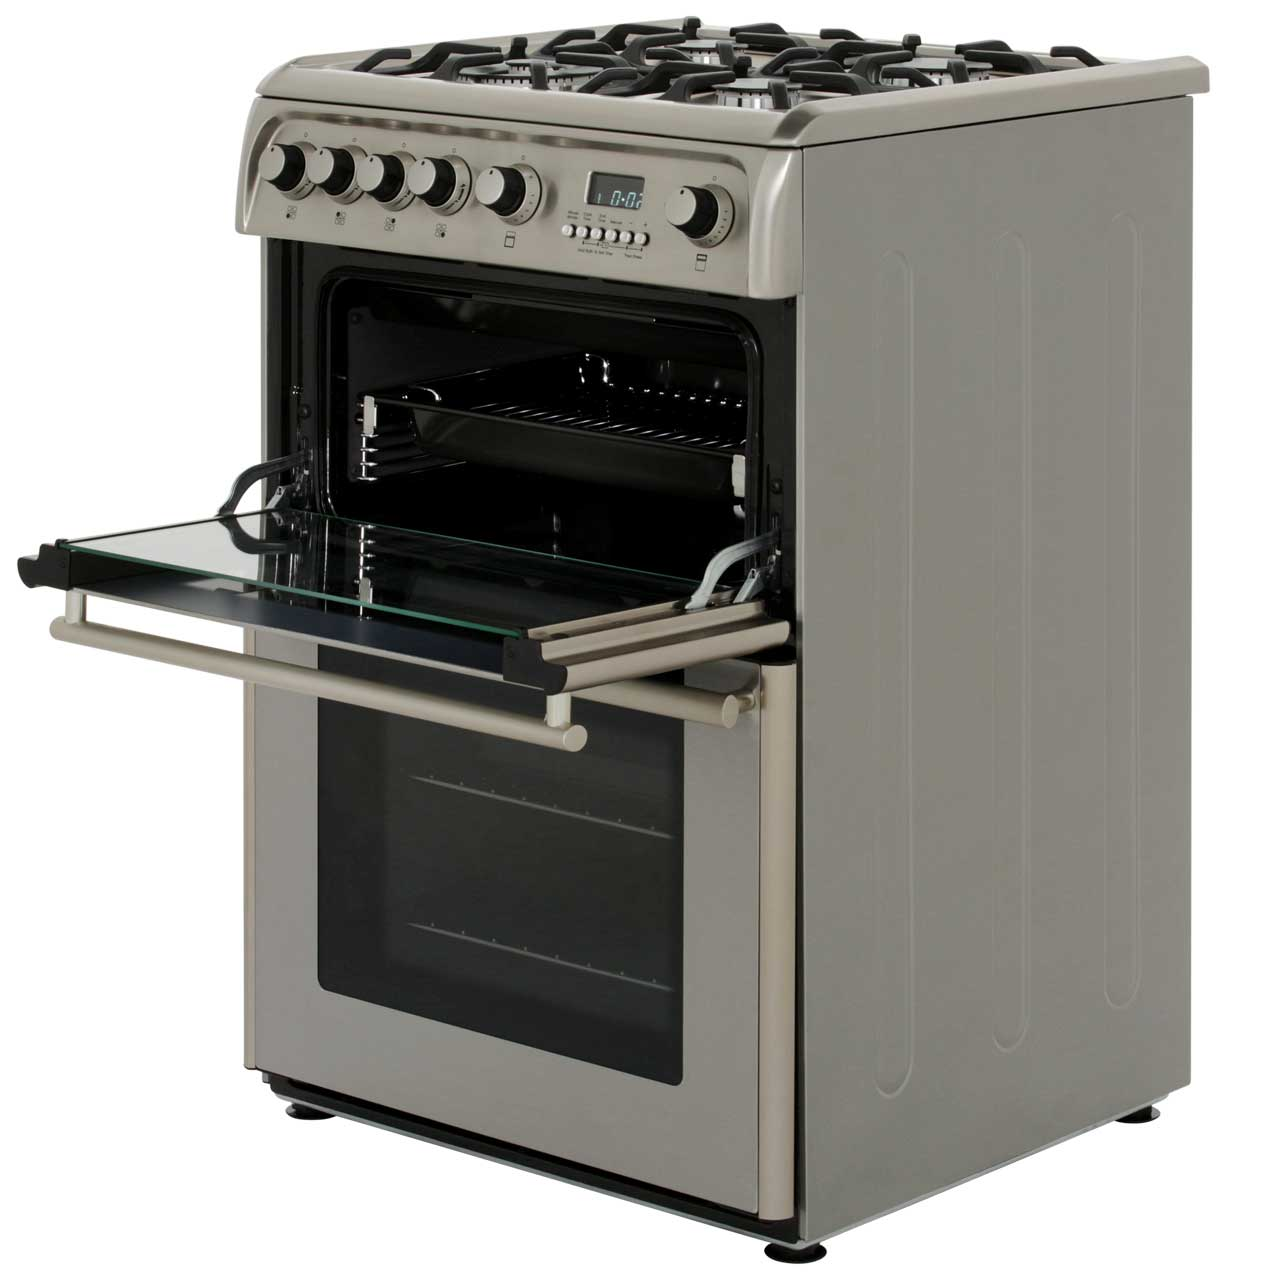 cannon gas cooker manual one word quickstart guide book u2022 rh ebmaintenance co uk Falcon Cookers Rangemaster Cookers